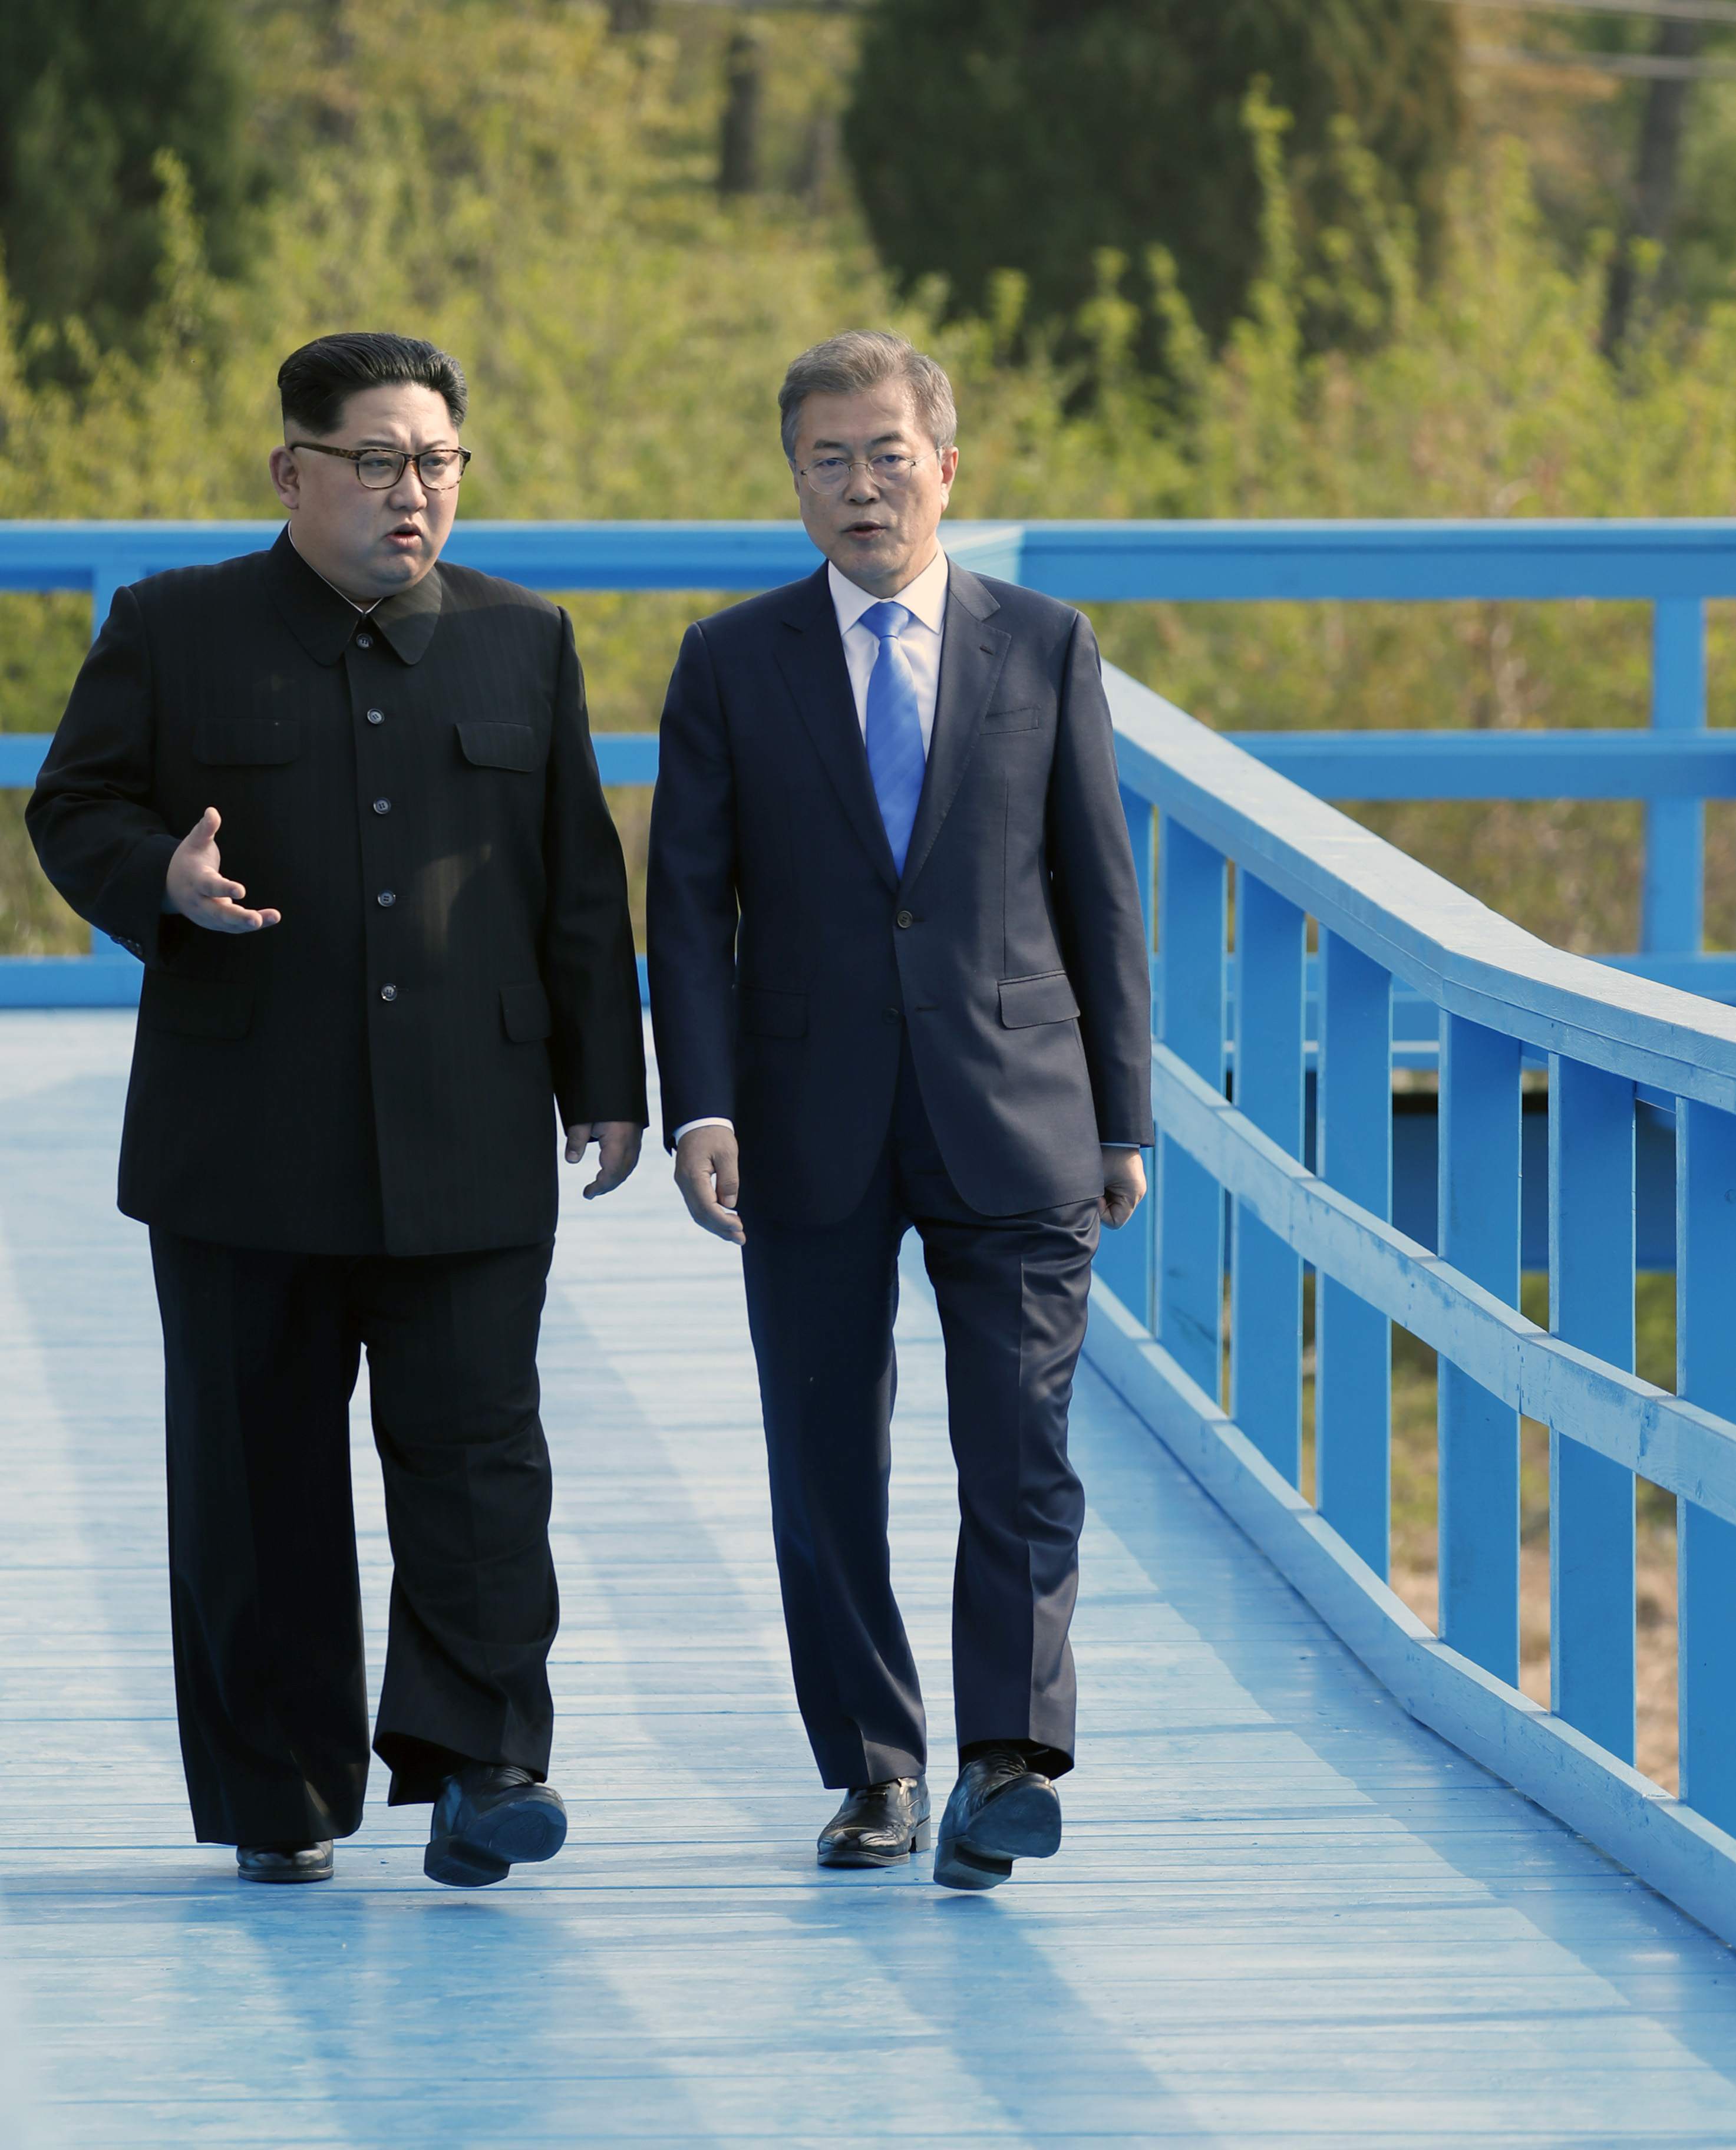 PANMUNJOM, SOUTH KOREA - APRIL 27: North Korean leader Kim Jong Un (L) and South Korean President Moon Jae-in (R) take a walk on the walk bridge during the Inter-Korean Summit on April 27, 2018 in Panmunjom, South Korea. Kim and Moon meet at the border today for the third-ever Inter-Korean summit talks after the 1945 division of the peninsula, and first since 2007 between then President Roh Moo-hyun of South Korea and Leader Kim Jong-il of North Korea. (Photo by Korea Summit Press Pool/Getty Images)